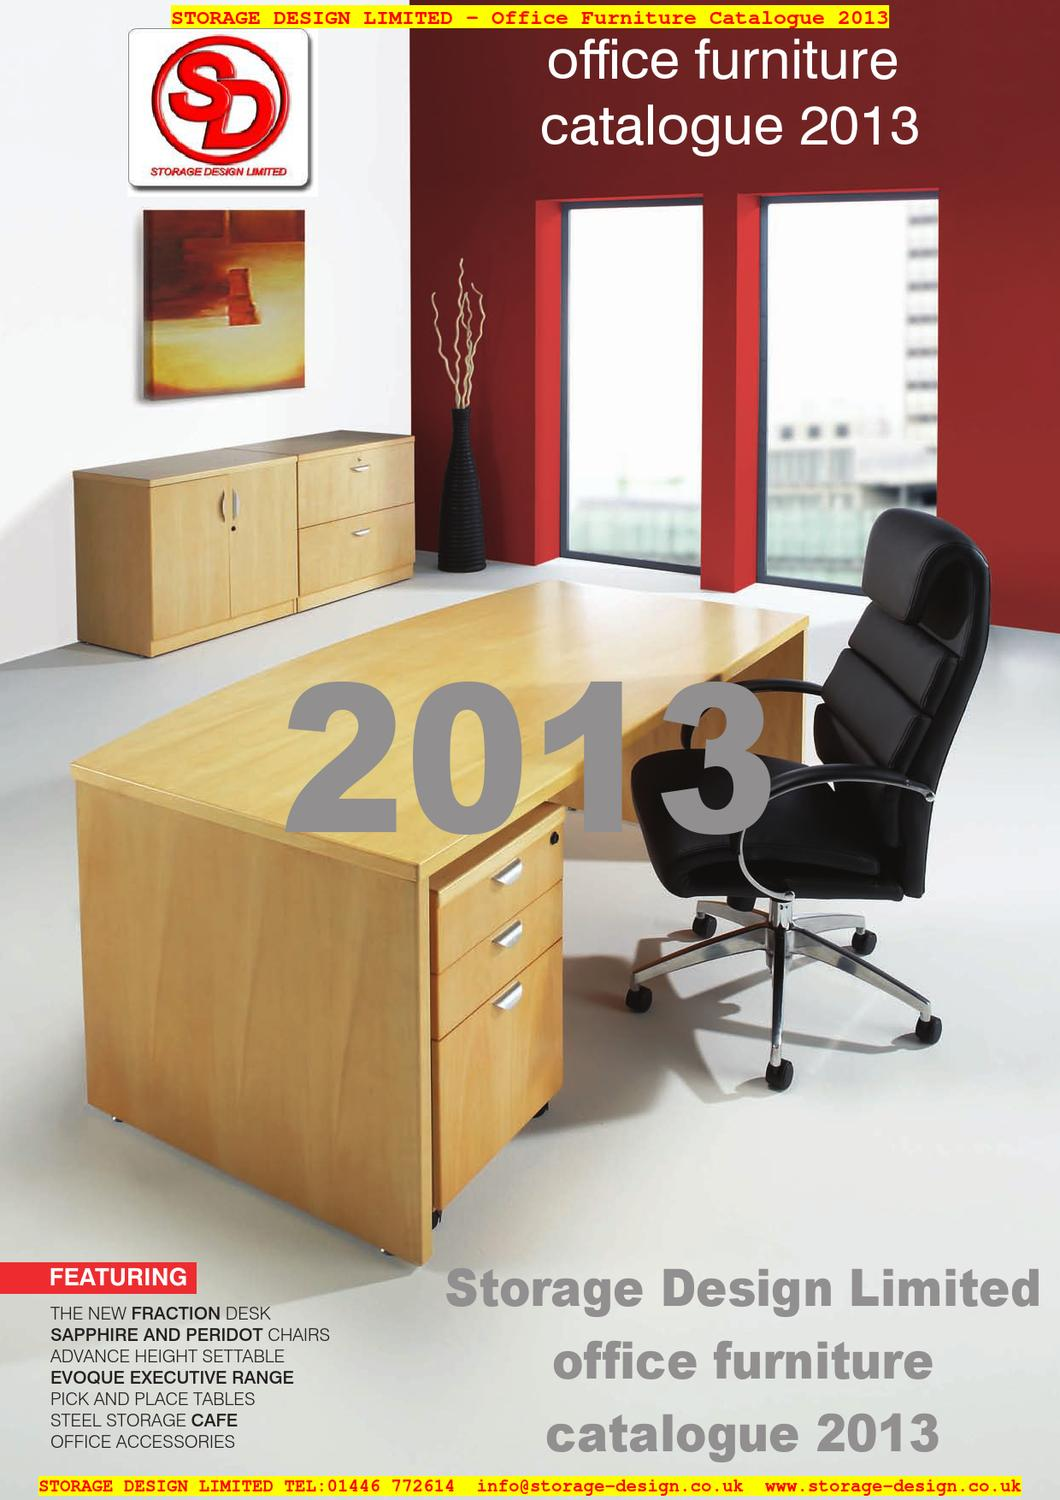 Office Furniture Catalogue 2013 From Storage Design Limited By Storage Design Limited Issuu